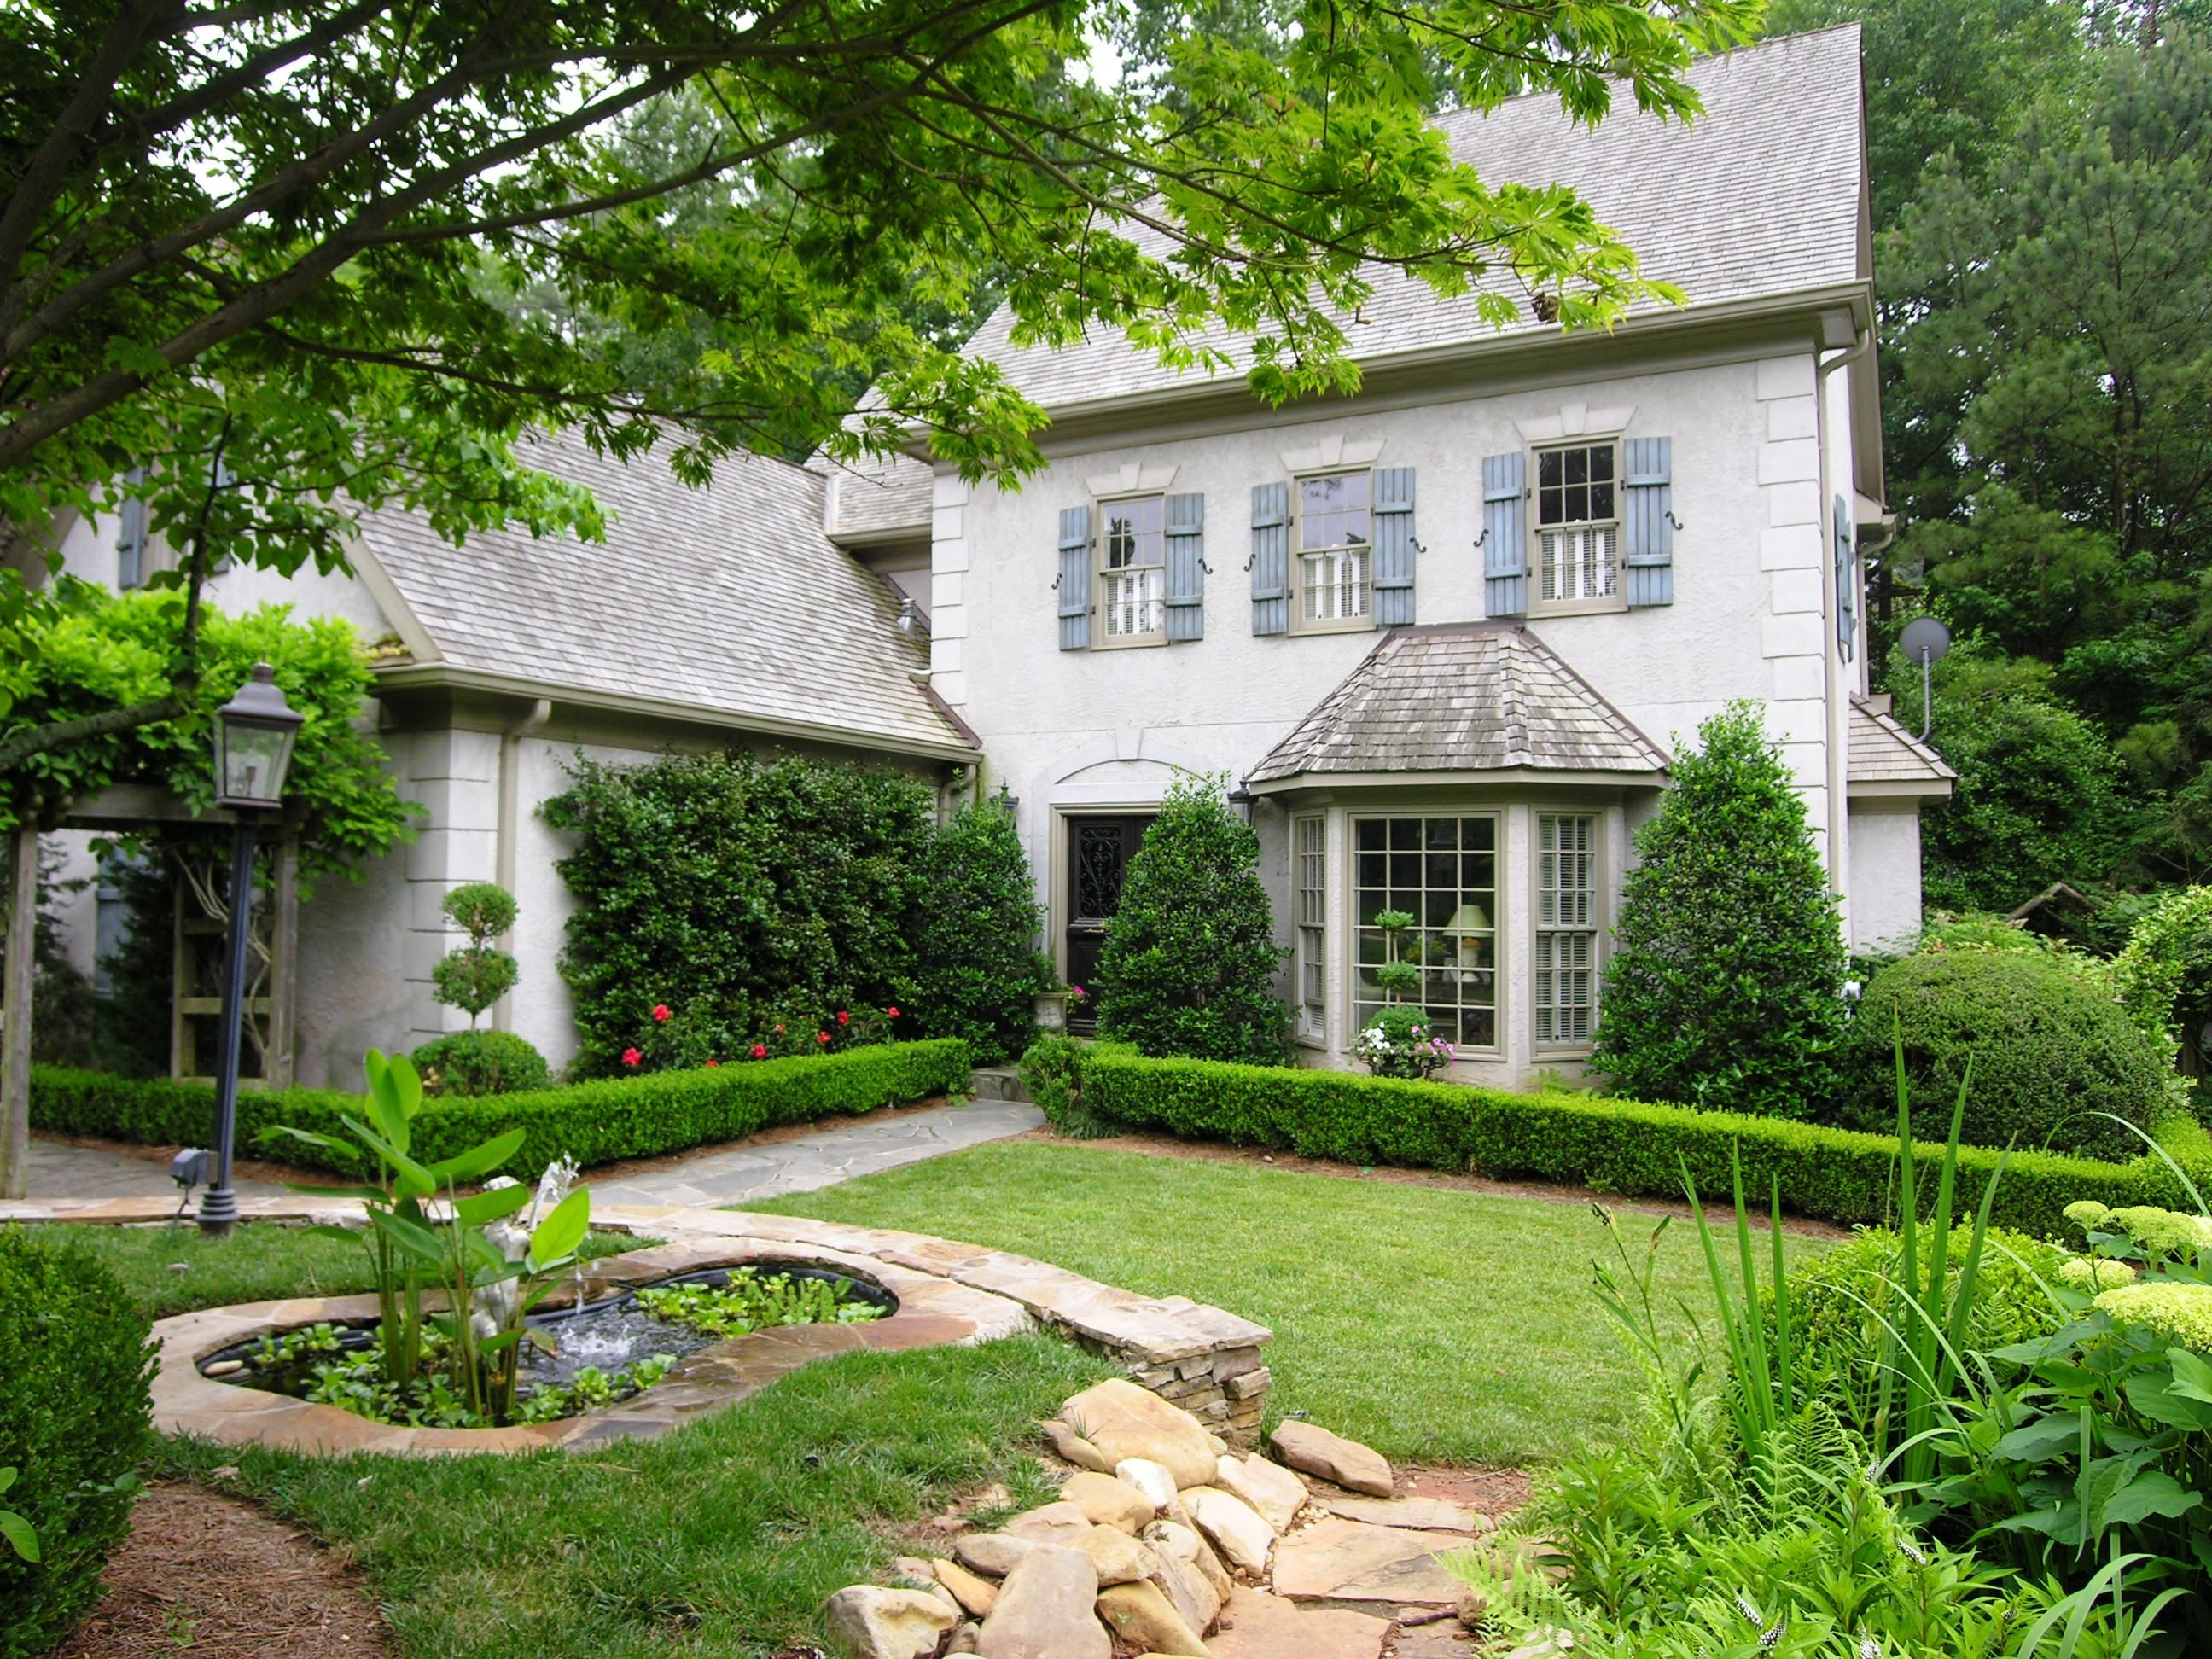 French Style French Country Exterior Country Home Exteriors French Country Houses Exterior